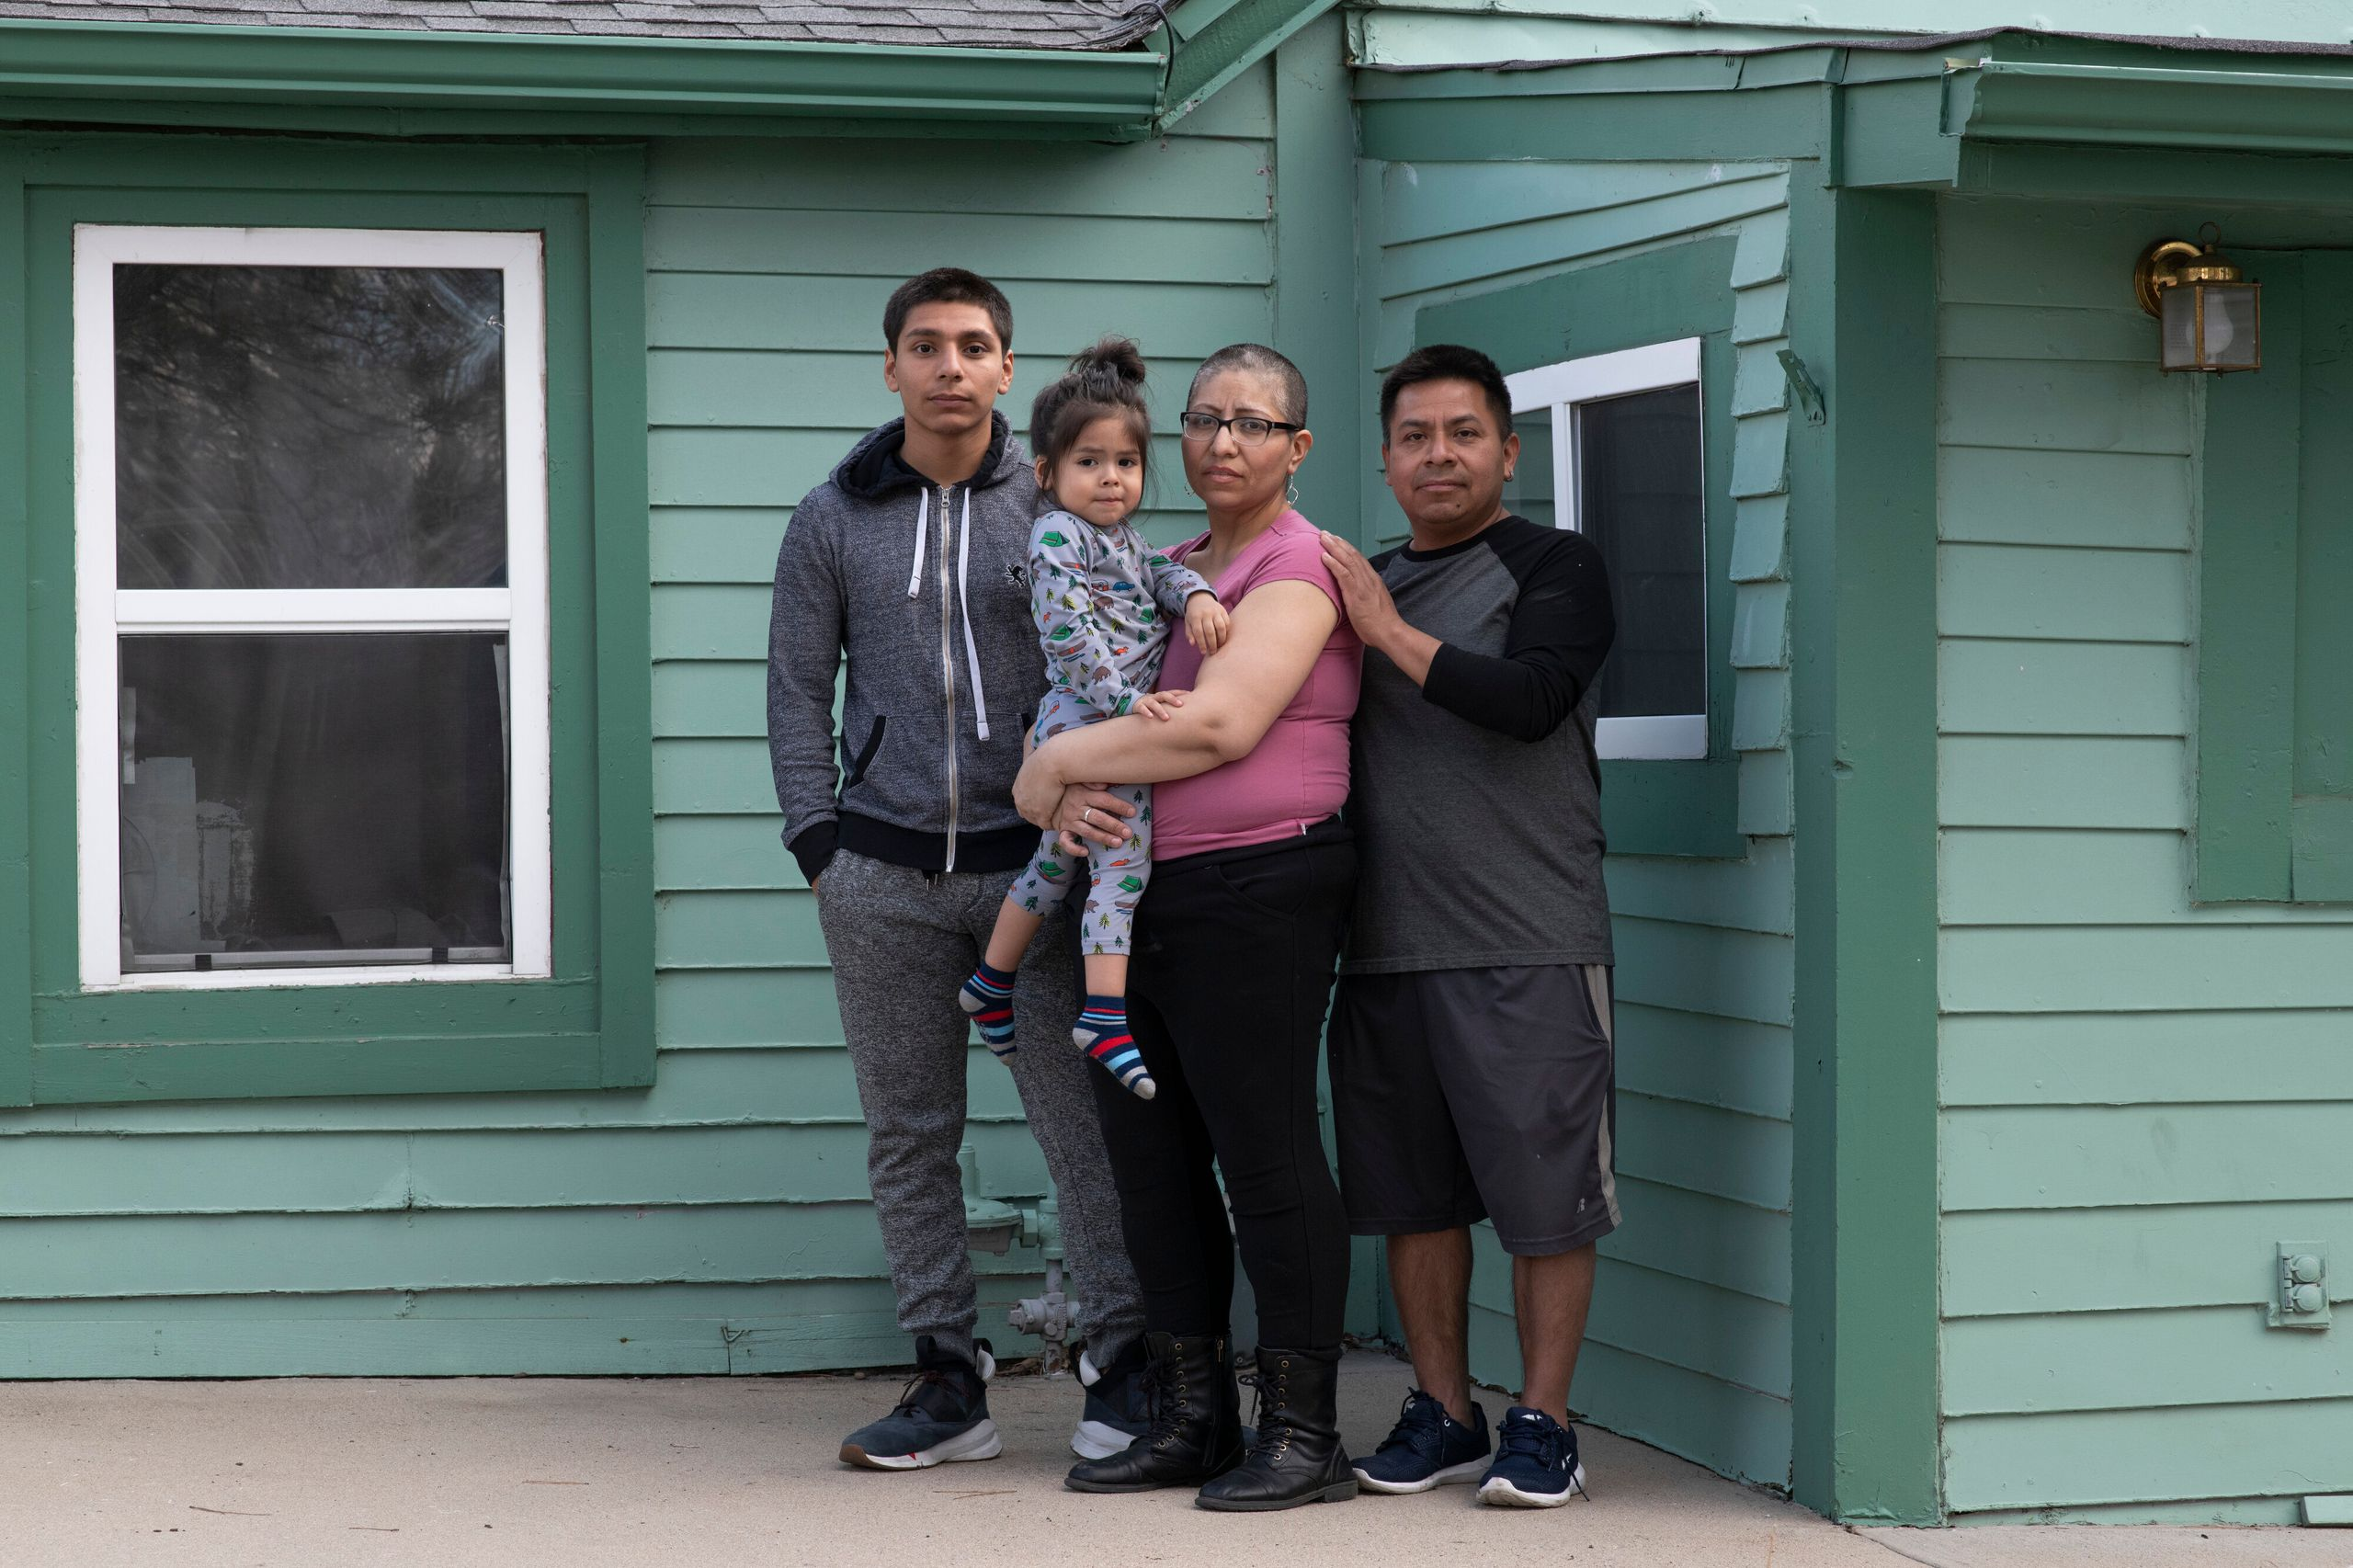 From left: Jorge Garcia, 15, stands with his mother, Ezzie Dominguez, who is holding her son Cristian Dominguez, 2, next to h